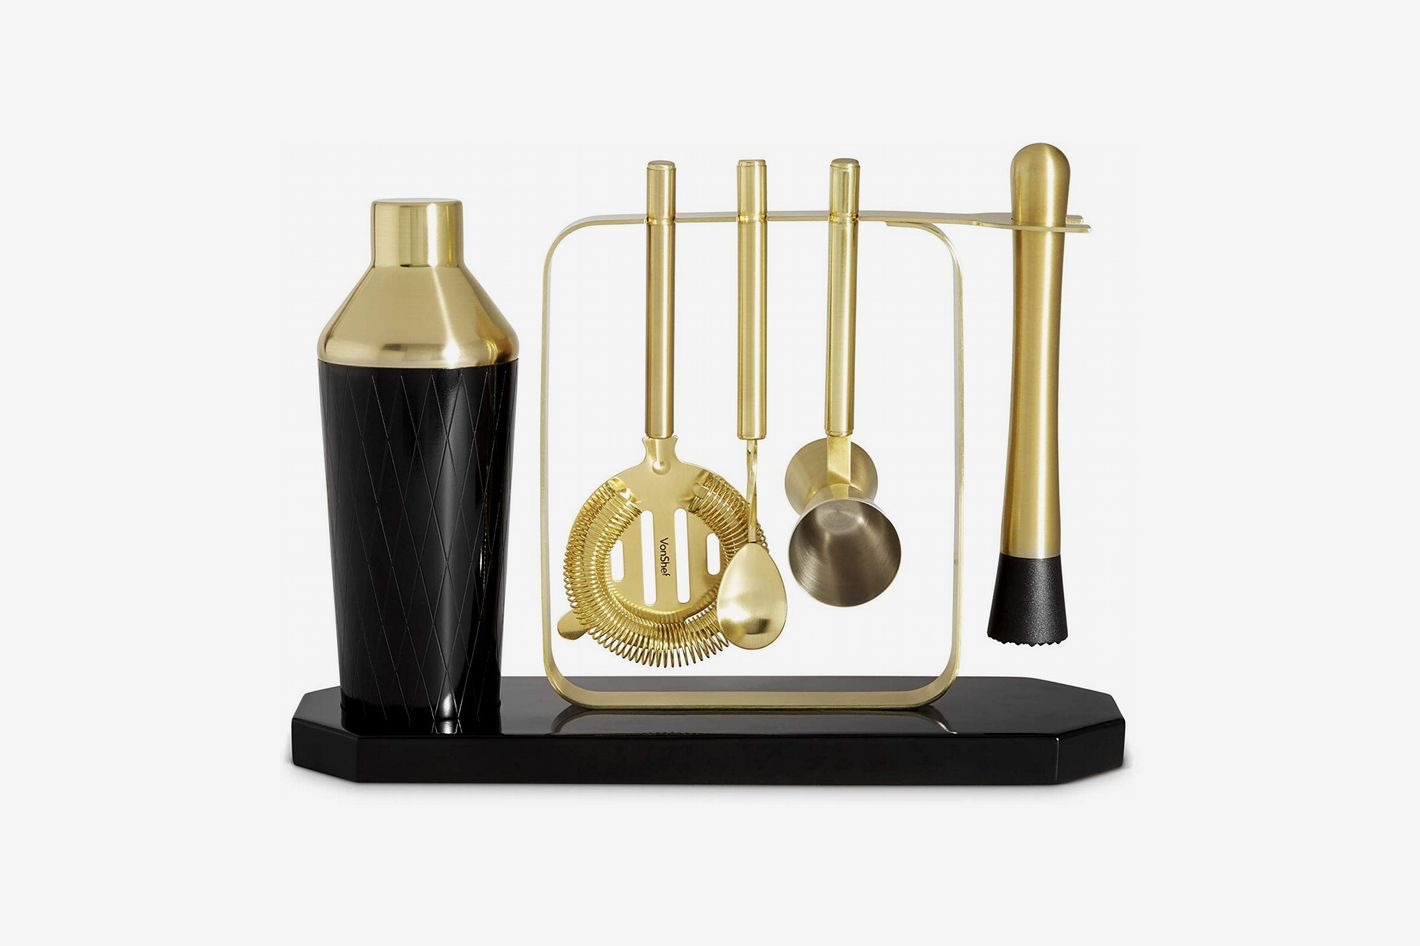 VonShef Black & Gold Cocktail Shaker Set